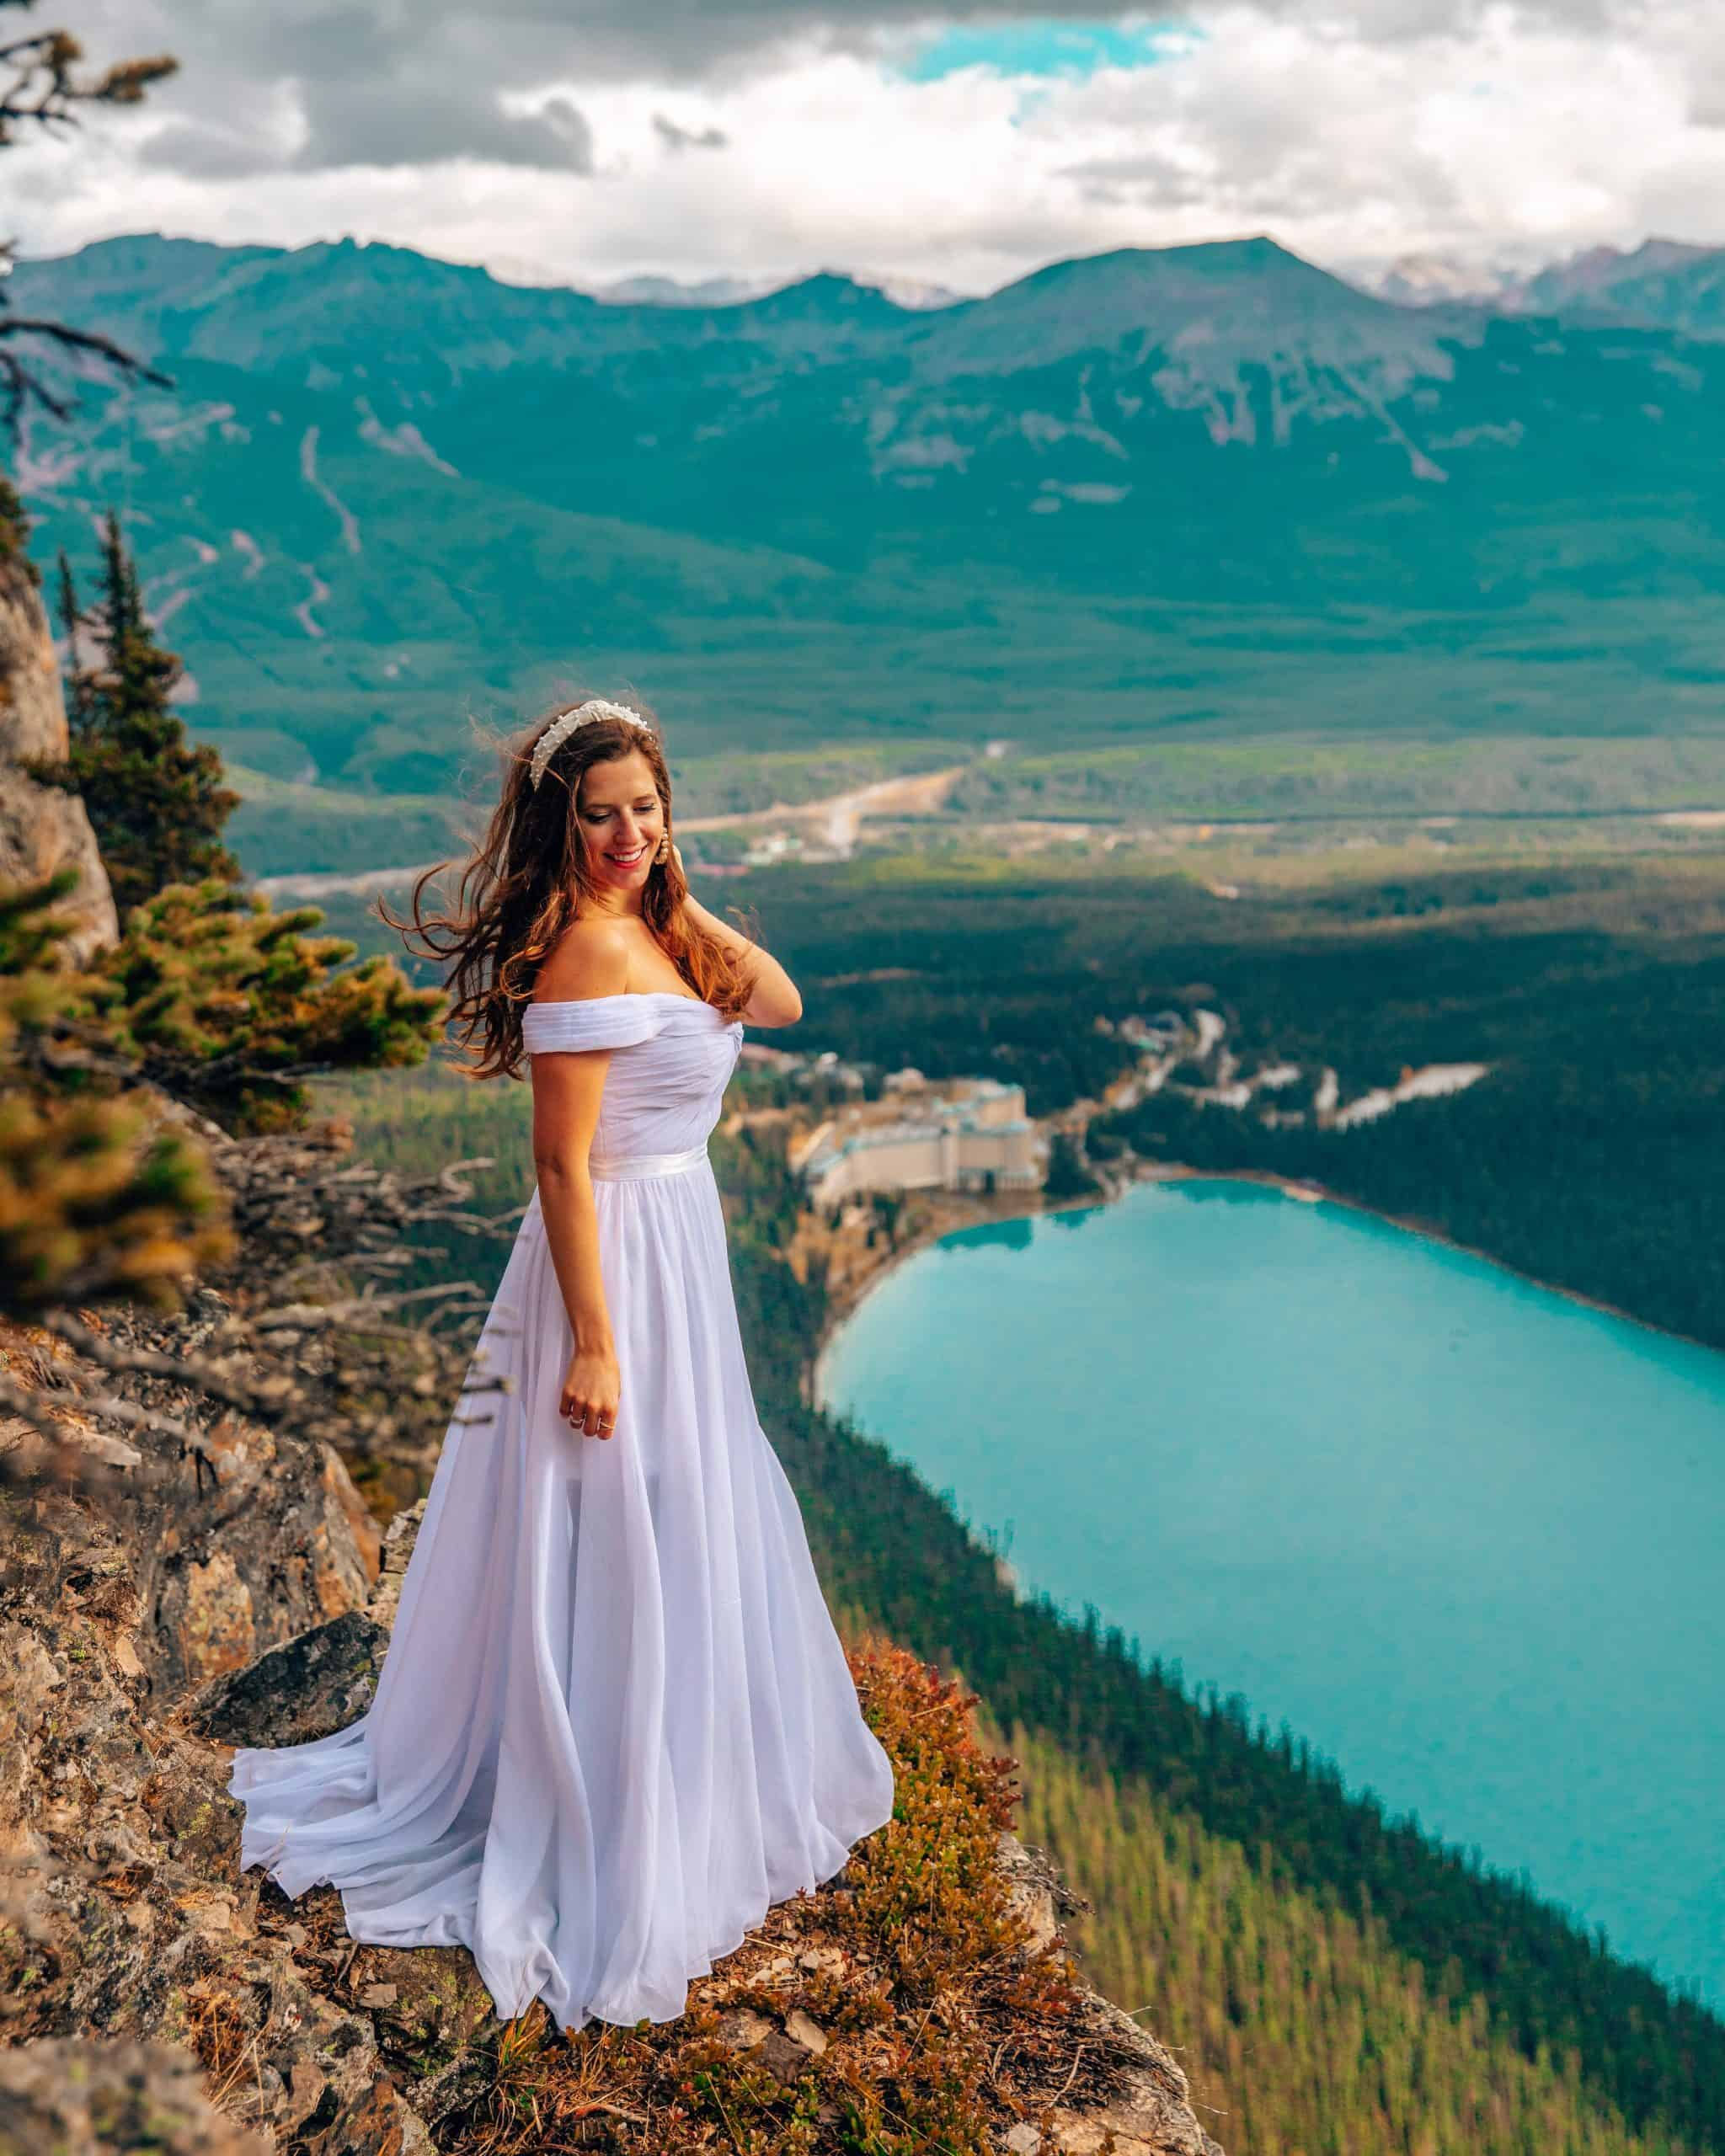 Bettina in White Dress at Big Beehive Viewpoint Lake Louise